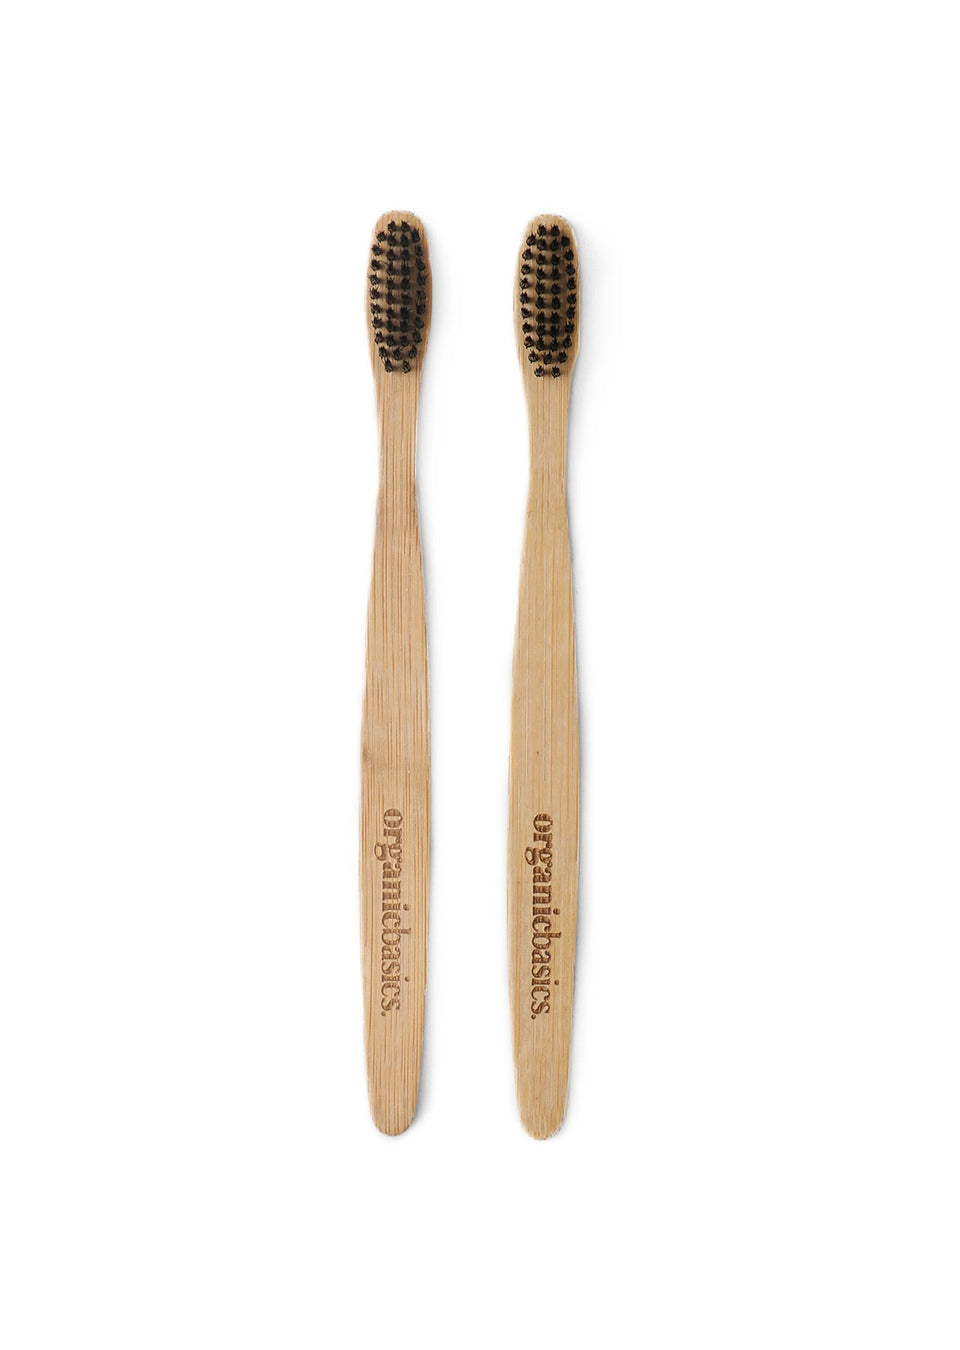 Organic Basics Recycled Bamboo Toothbrush 2-pack